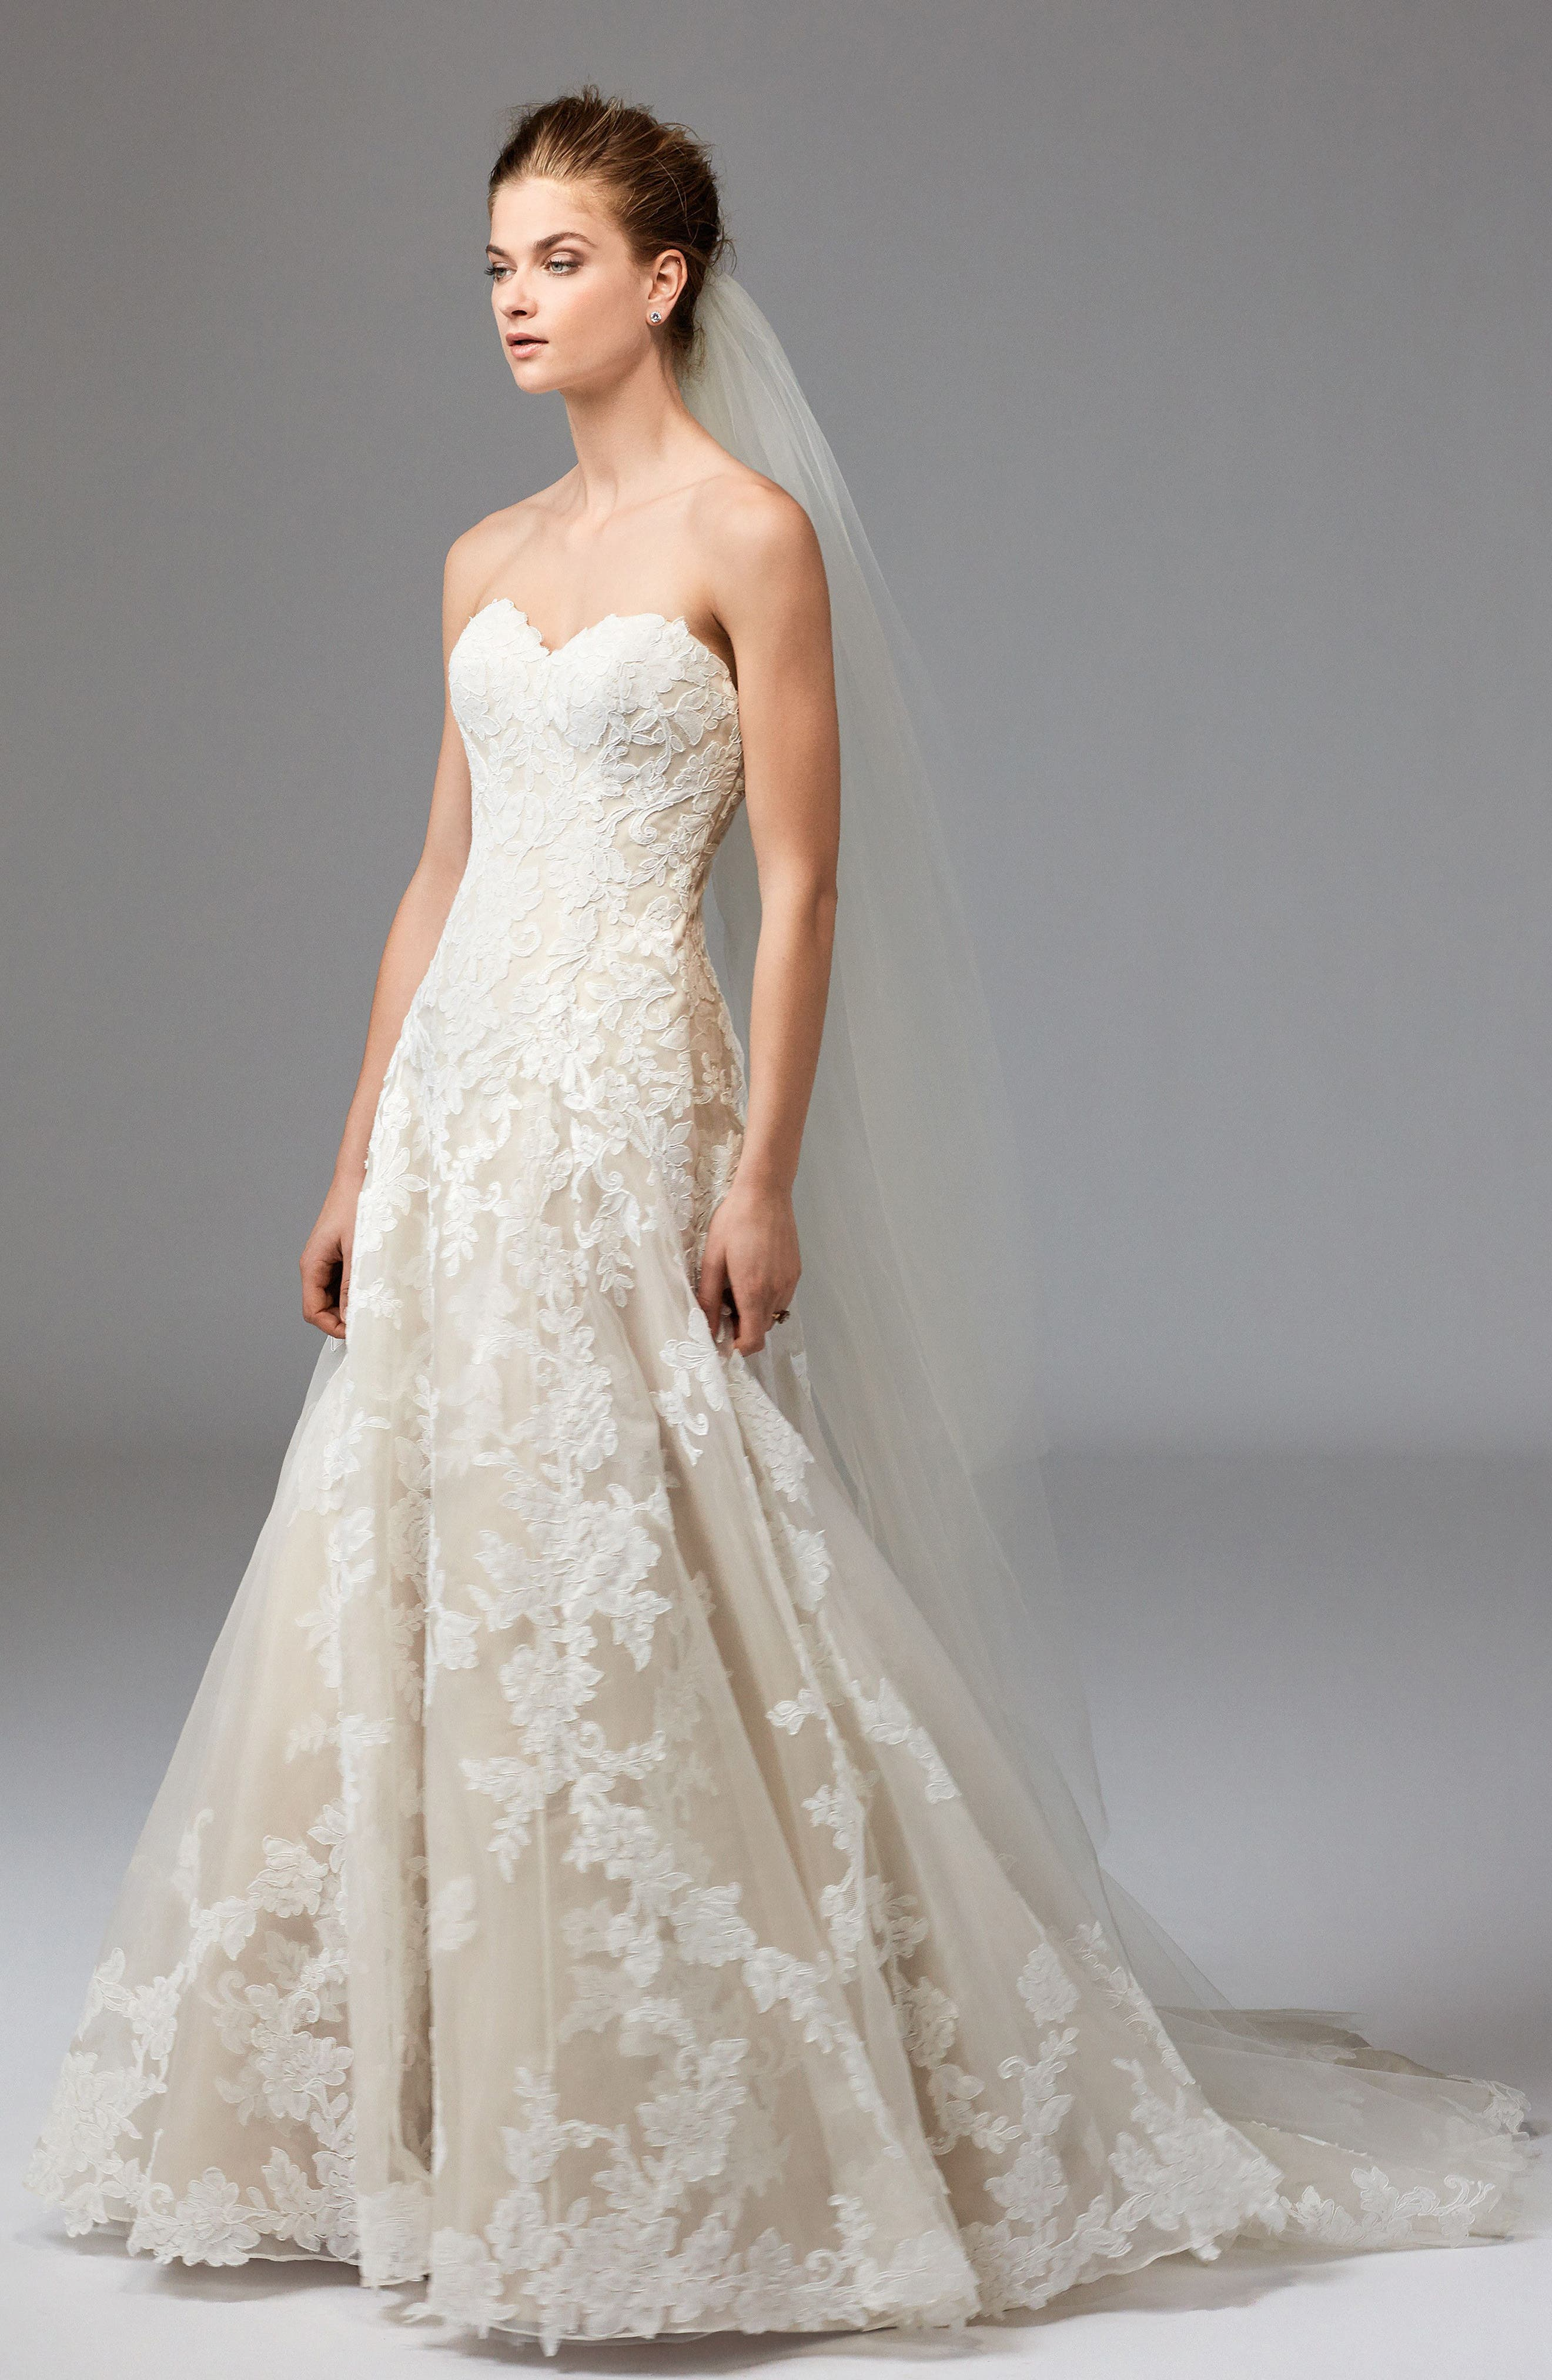 Aven Lace & Organza A-Line Gown,                             Alternate thumbnail 3, color,                             Ivory/ Nude